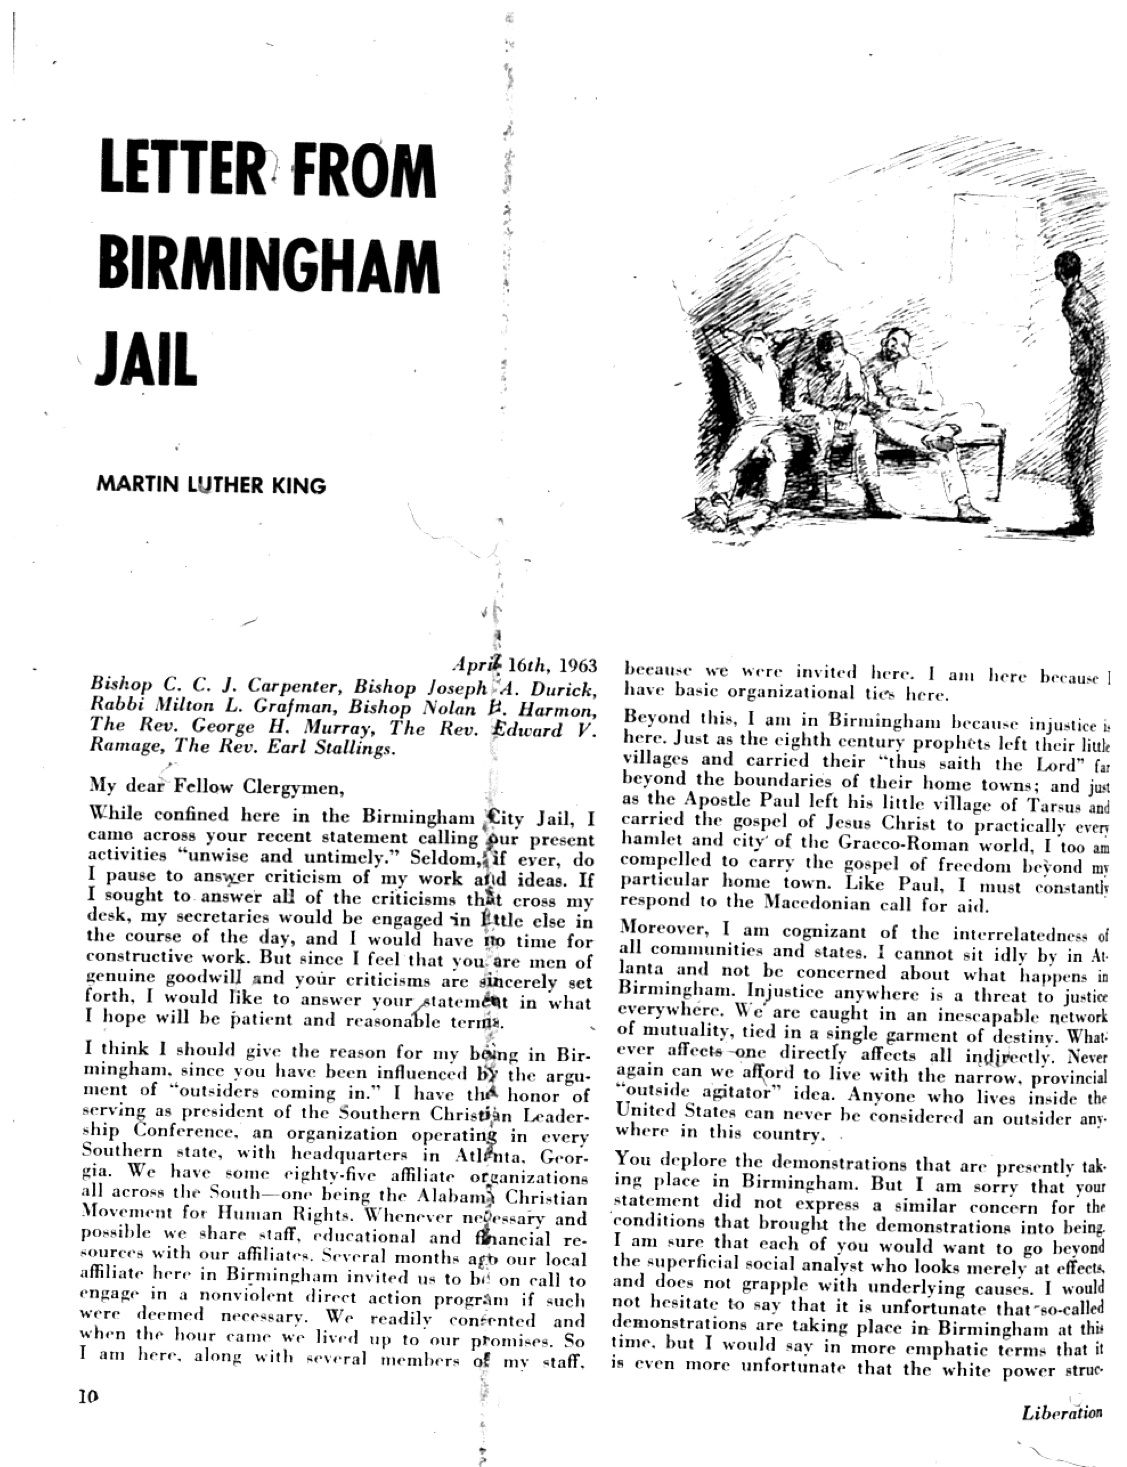 a literary analysis of letter from birmingham jail by martin luther king Start studying literary devices in king's letter from birmingham jail learn vocabulary, terms, and more with flashcards, games, and other study tools.